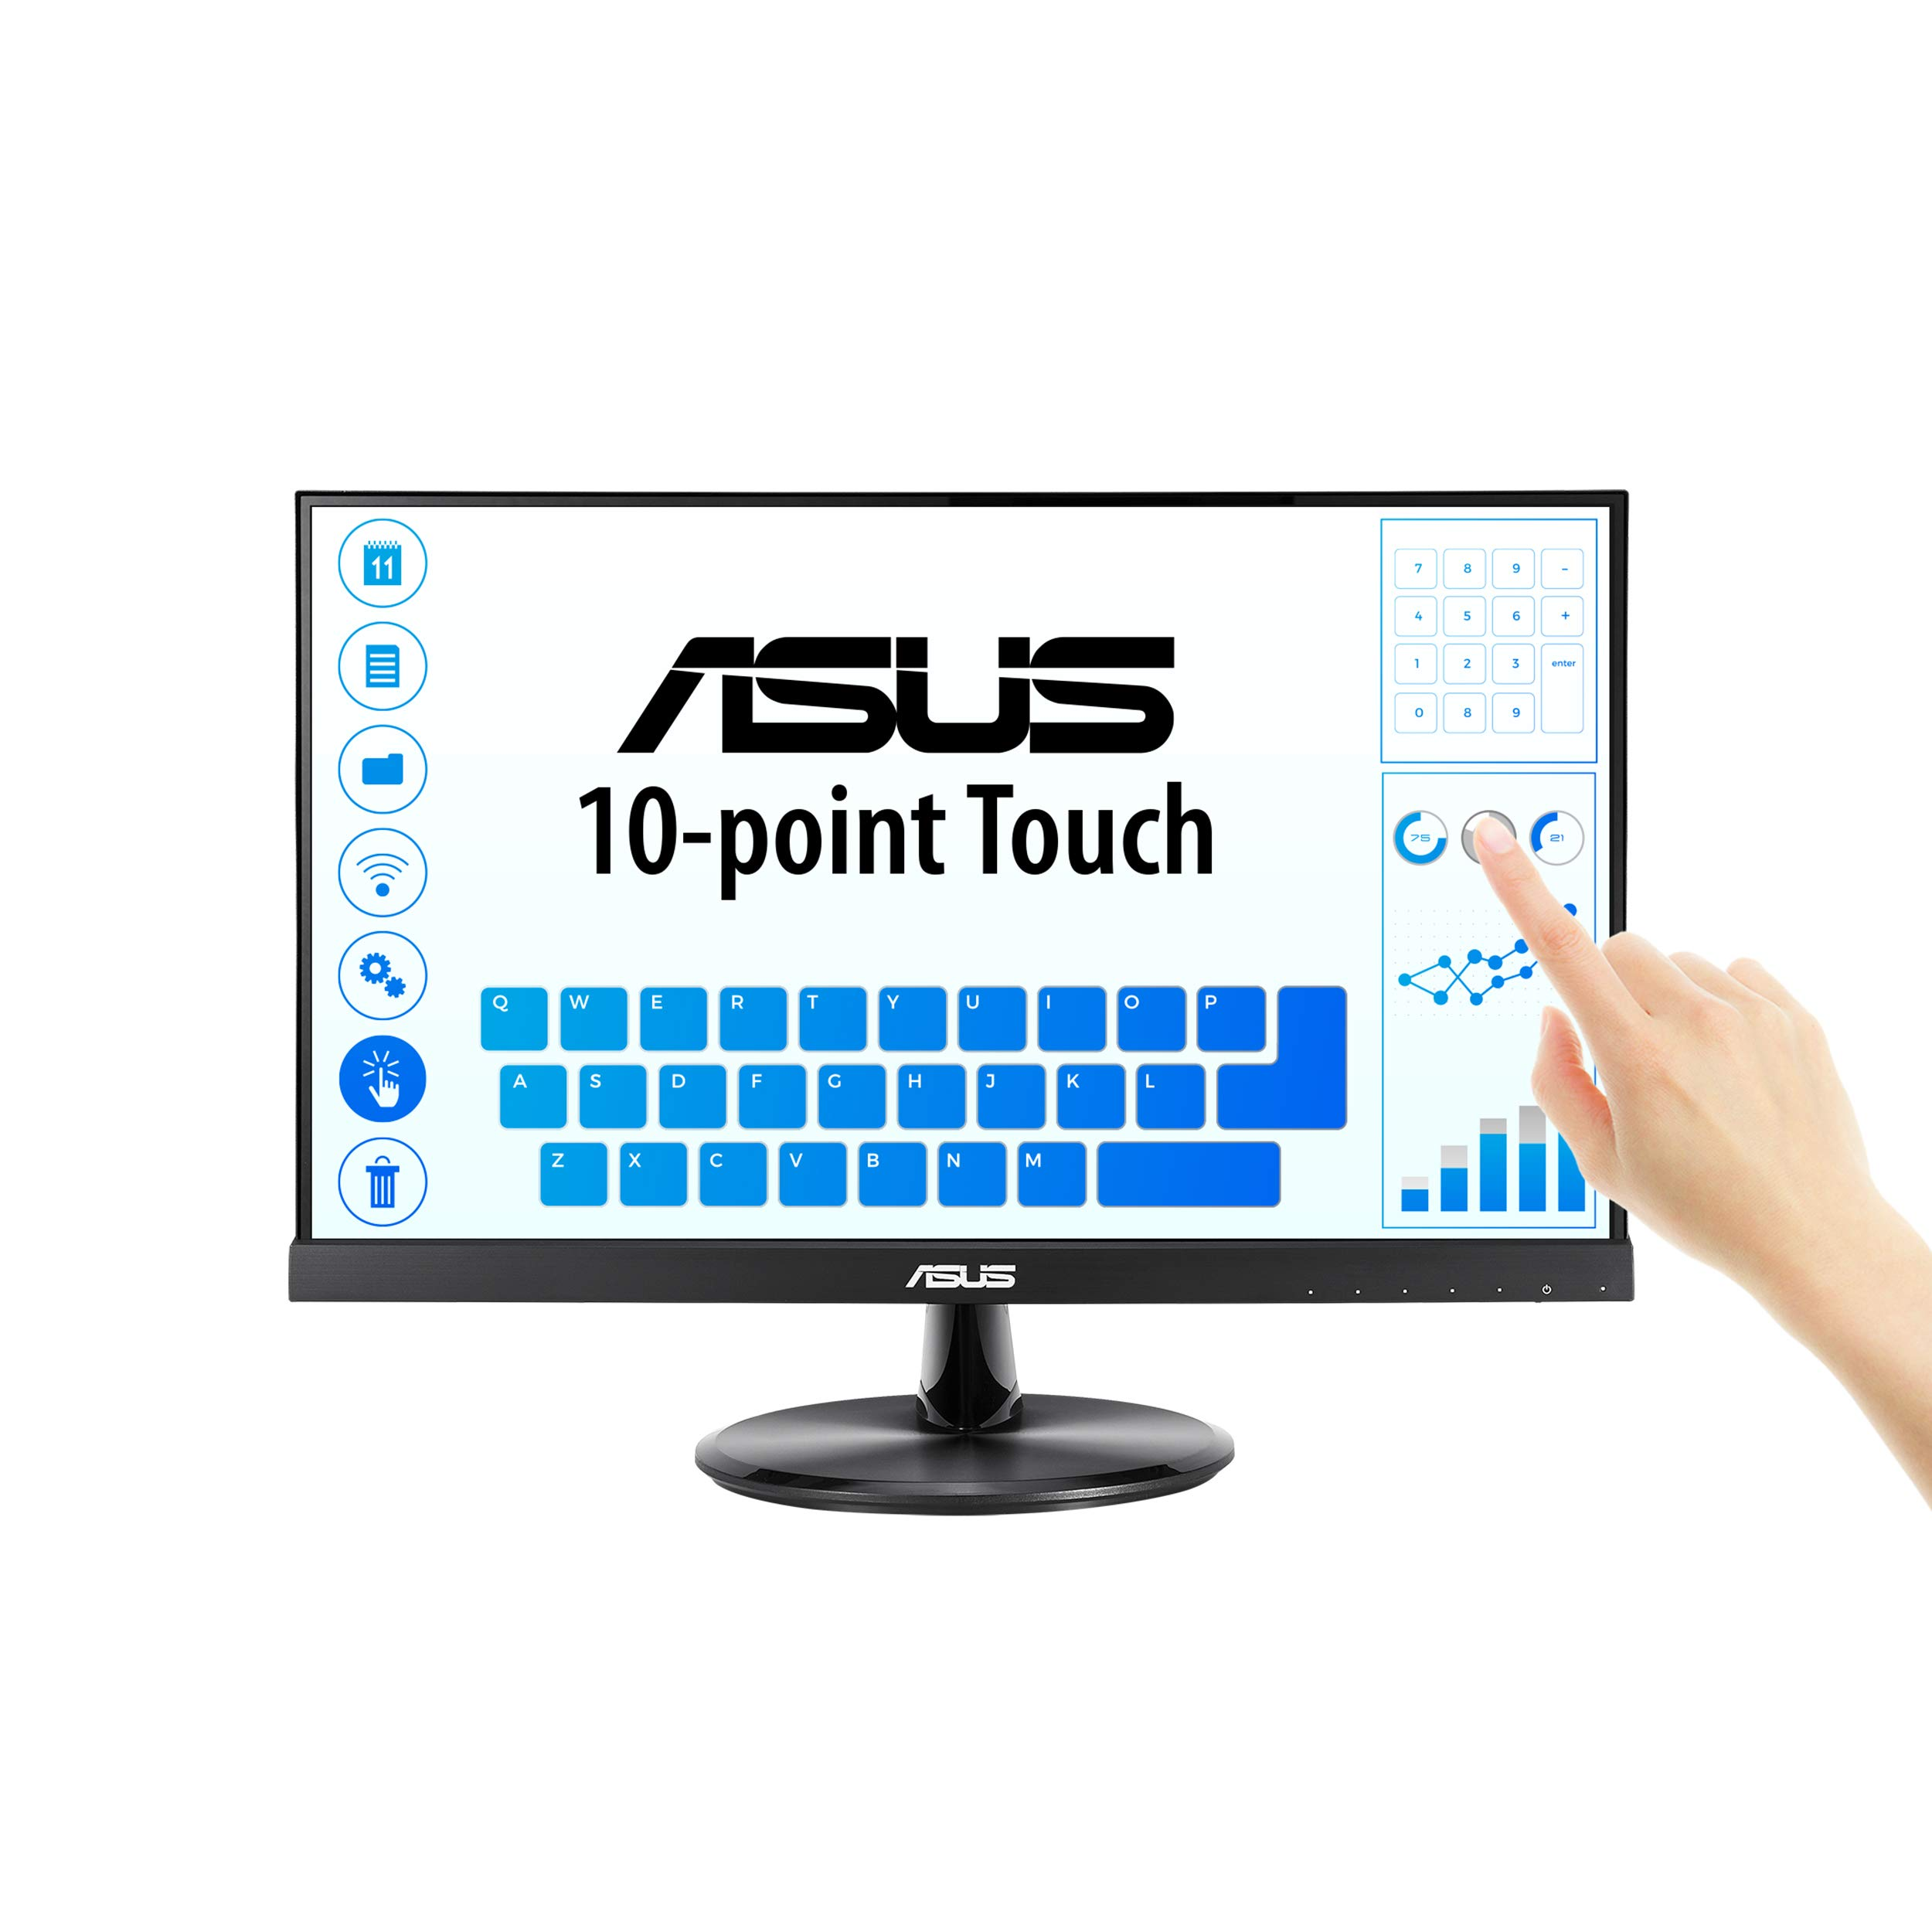 ASUS VT229H Monitor 1080P 10 Point